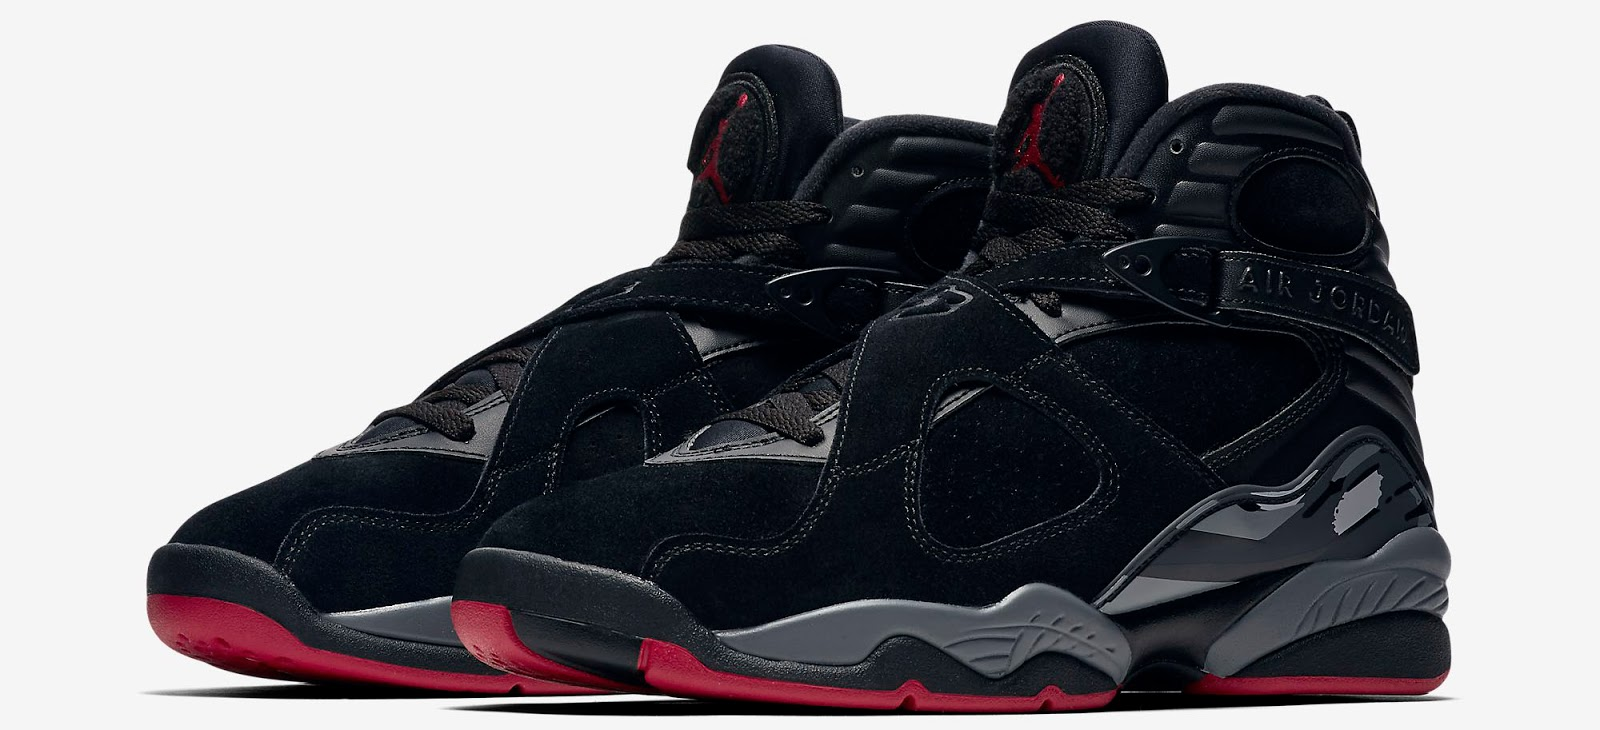 54e111f7a8a Inspired by an original Air Jordan 4, this Air Jordan 8 Retro is known as  the